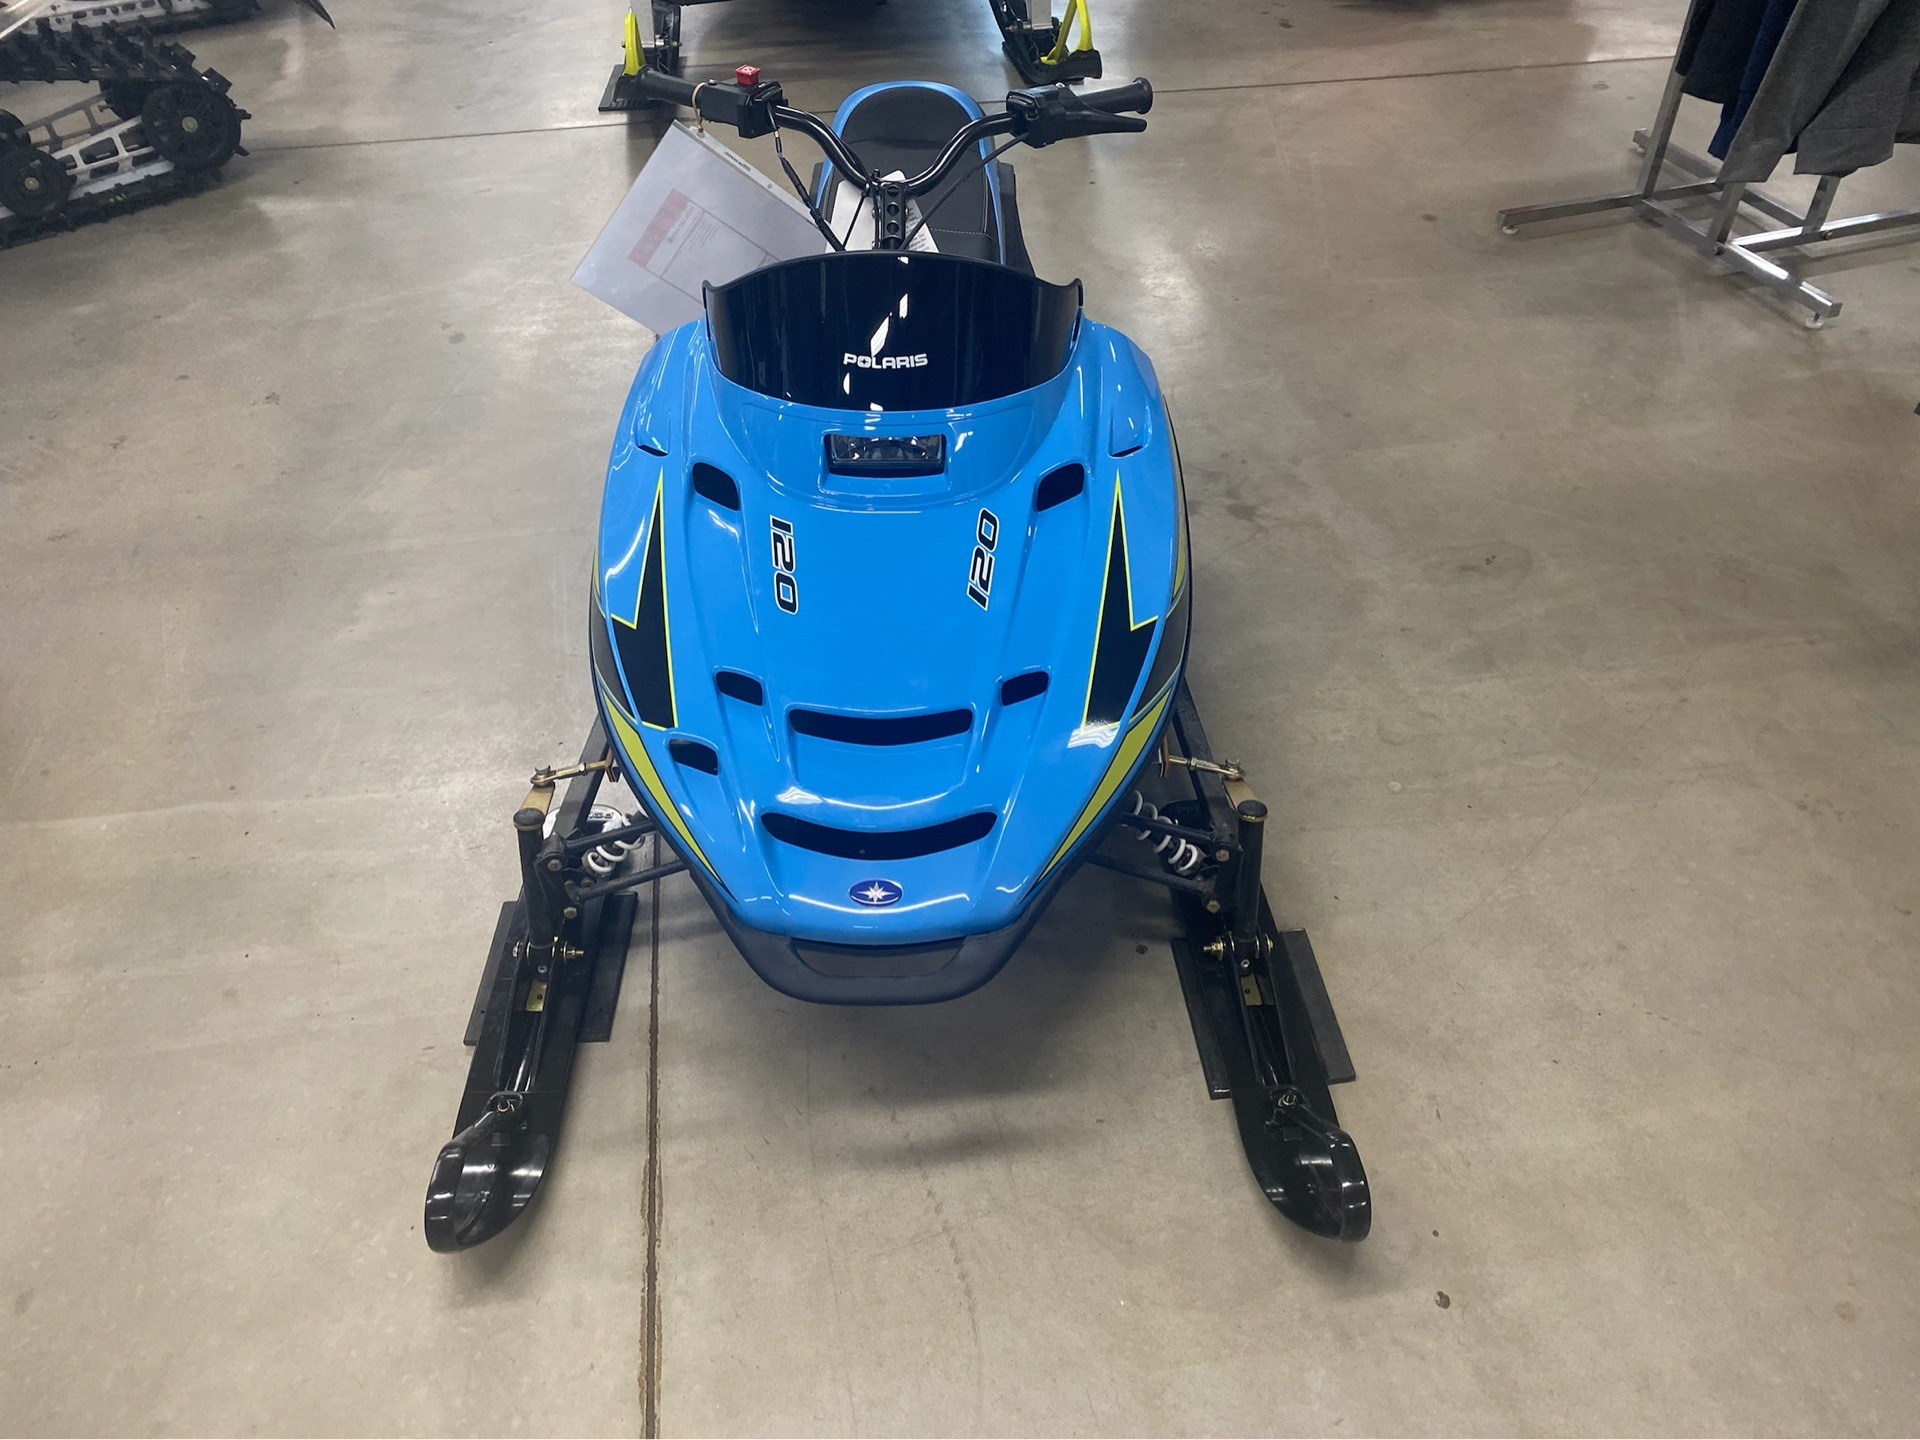 2020 Polaris 120 Indy in Appleton, Wisconsin - Photo 2